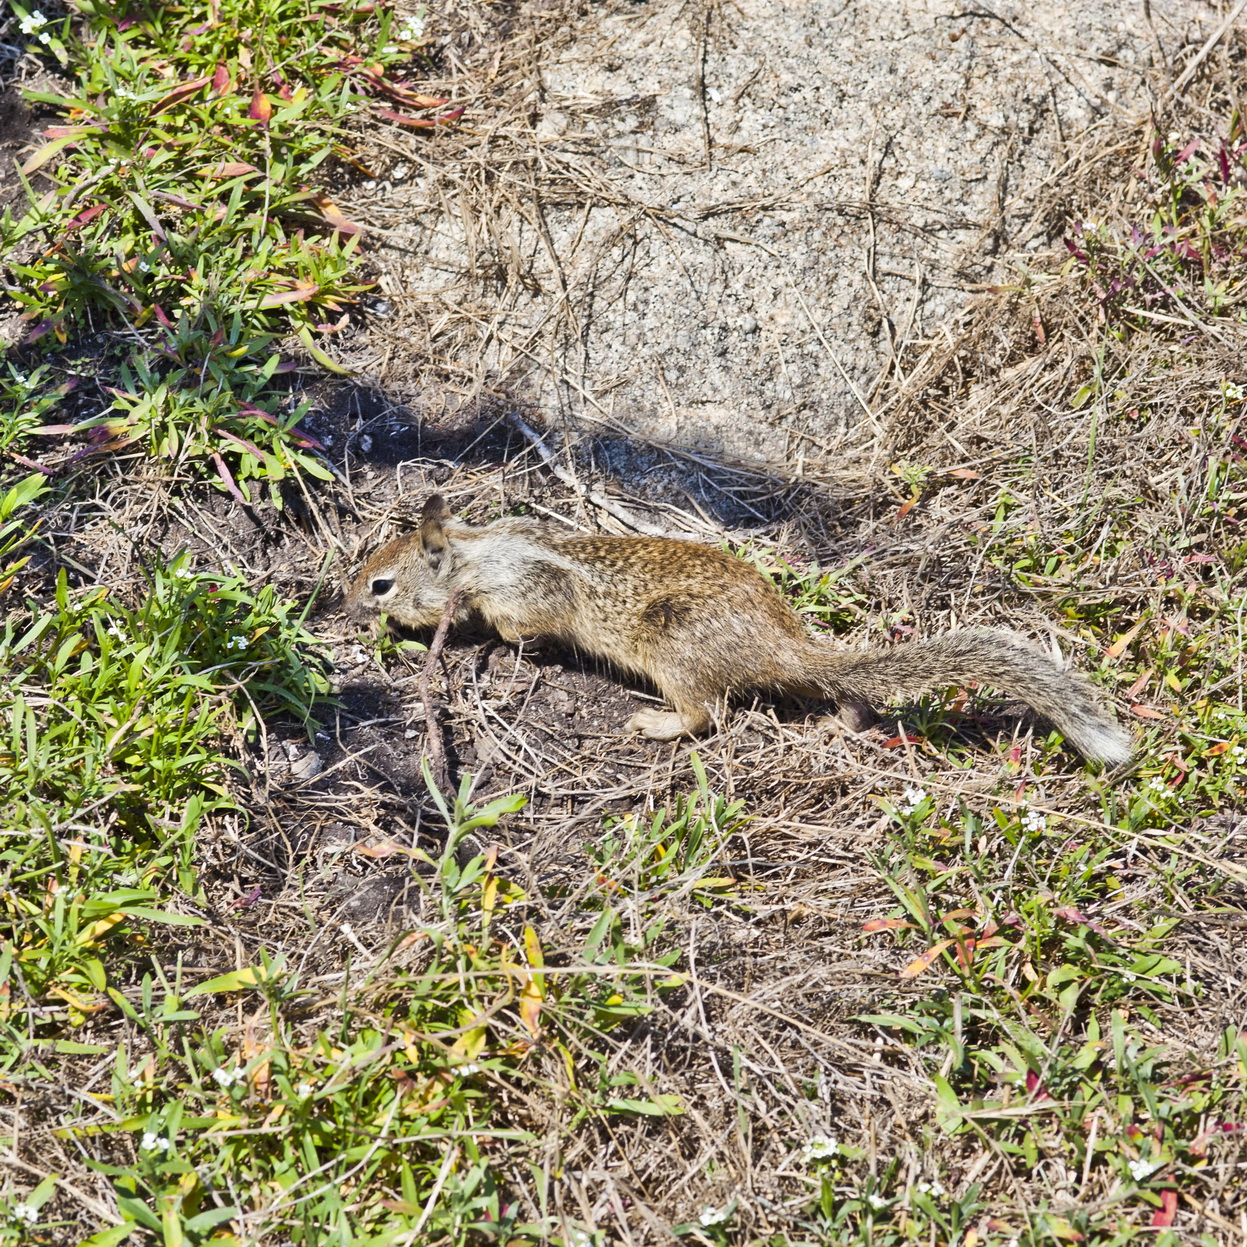 California ground squirrel Otospermophilus beecheyi 17 Mile Drive Monterey CA July 2011 14